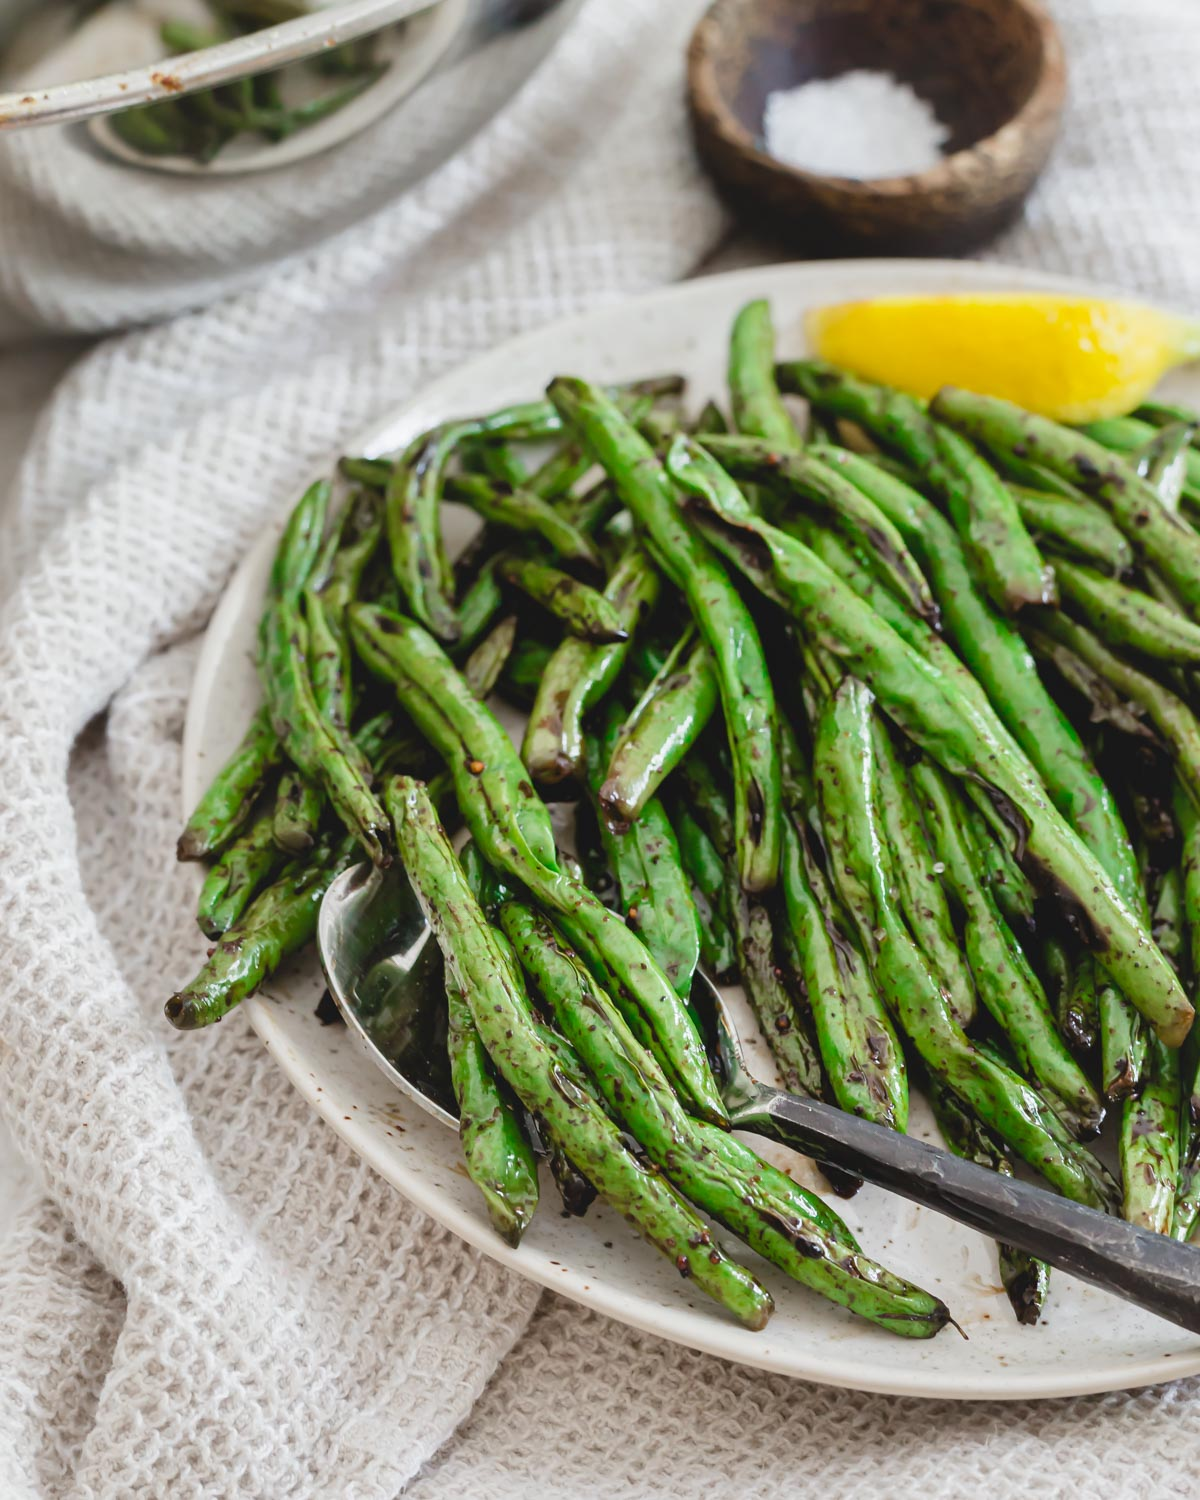 Grilled green bean side dish for easy summer meals.